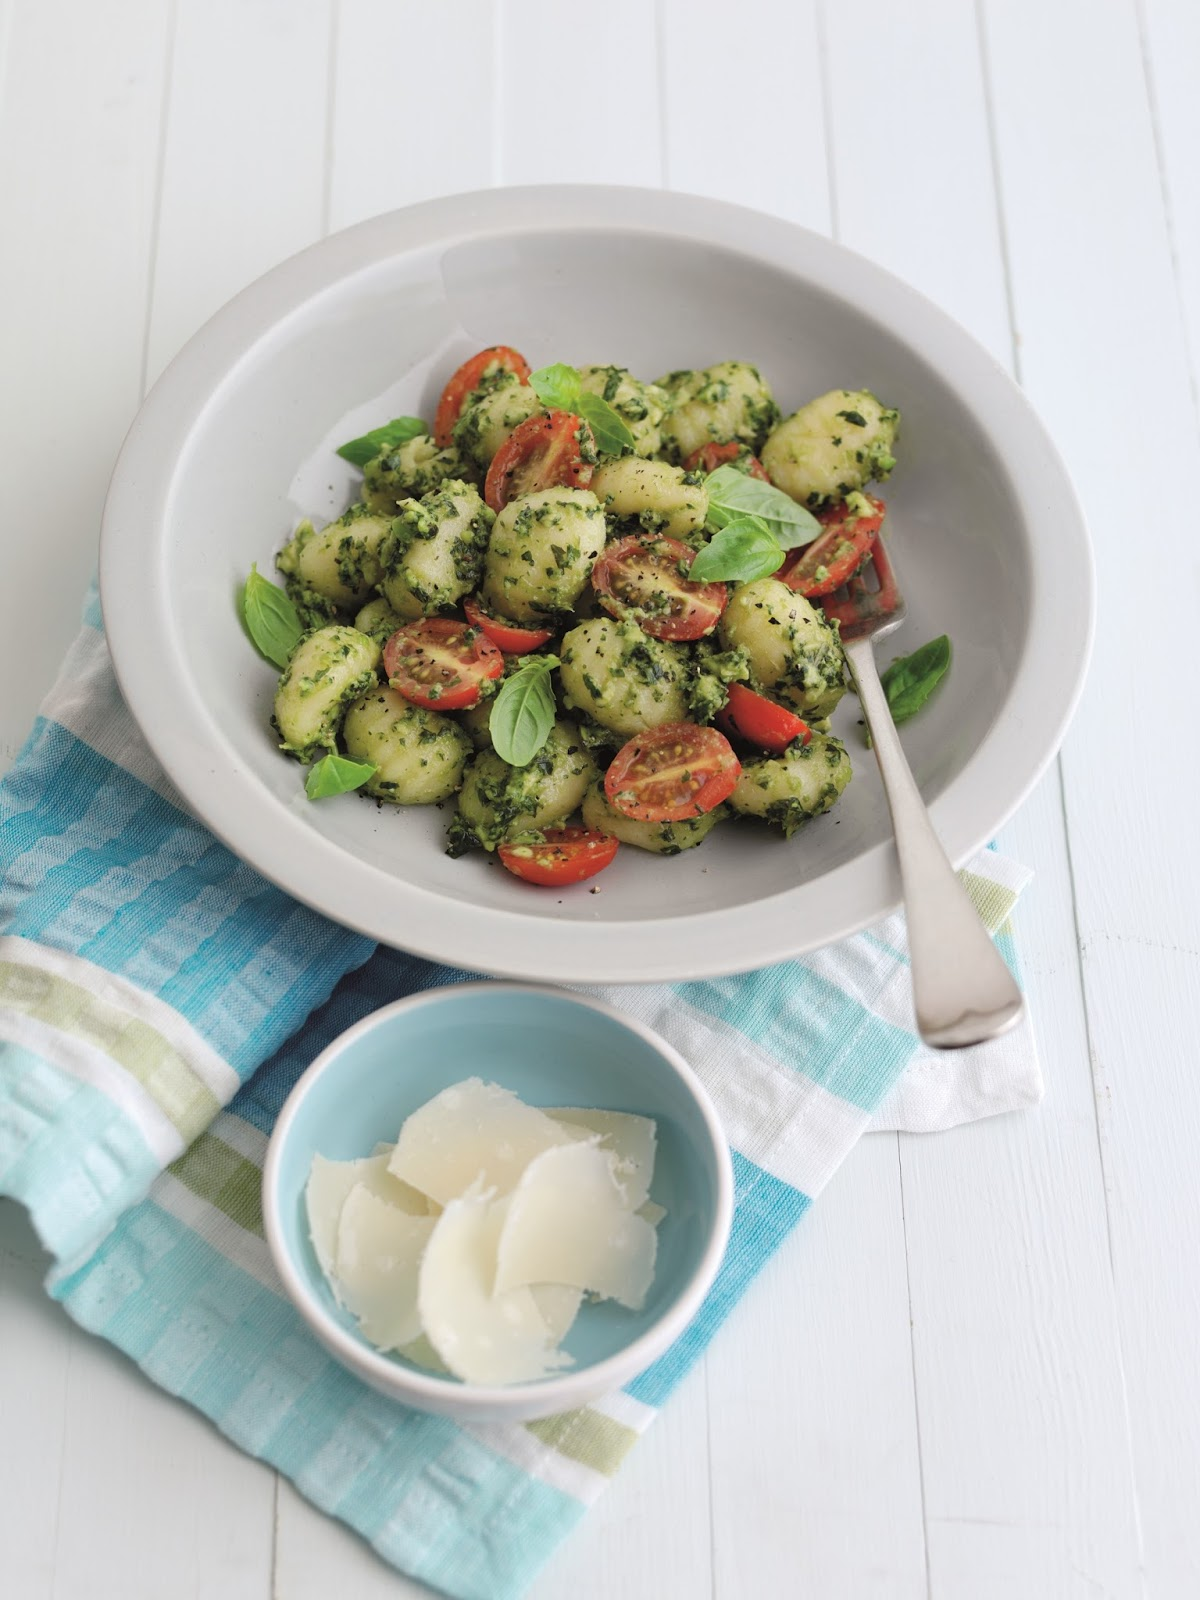 Summer Gnocchi With Avocado Pesto And Tomatoes...